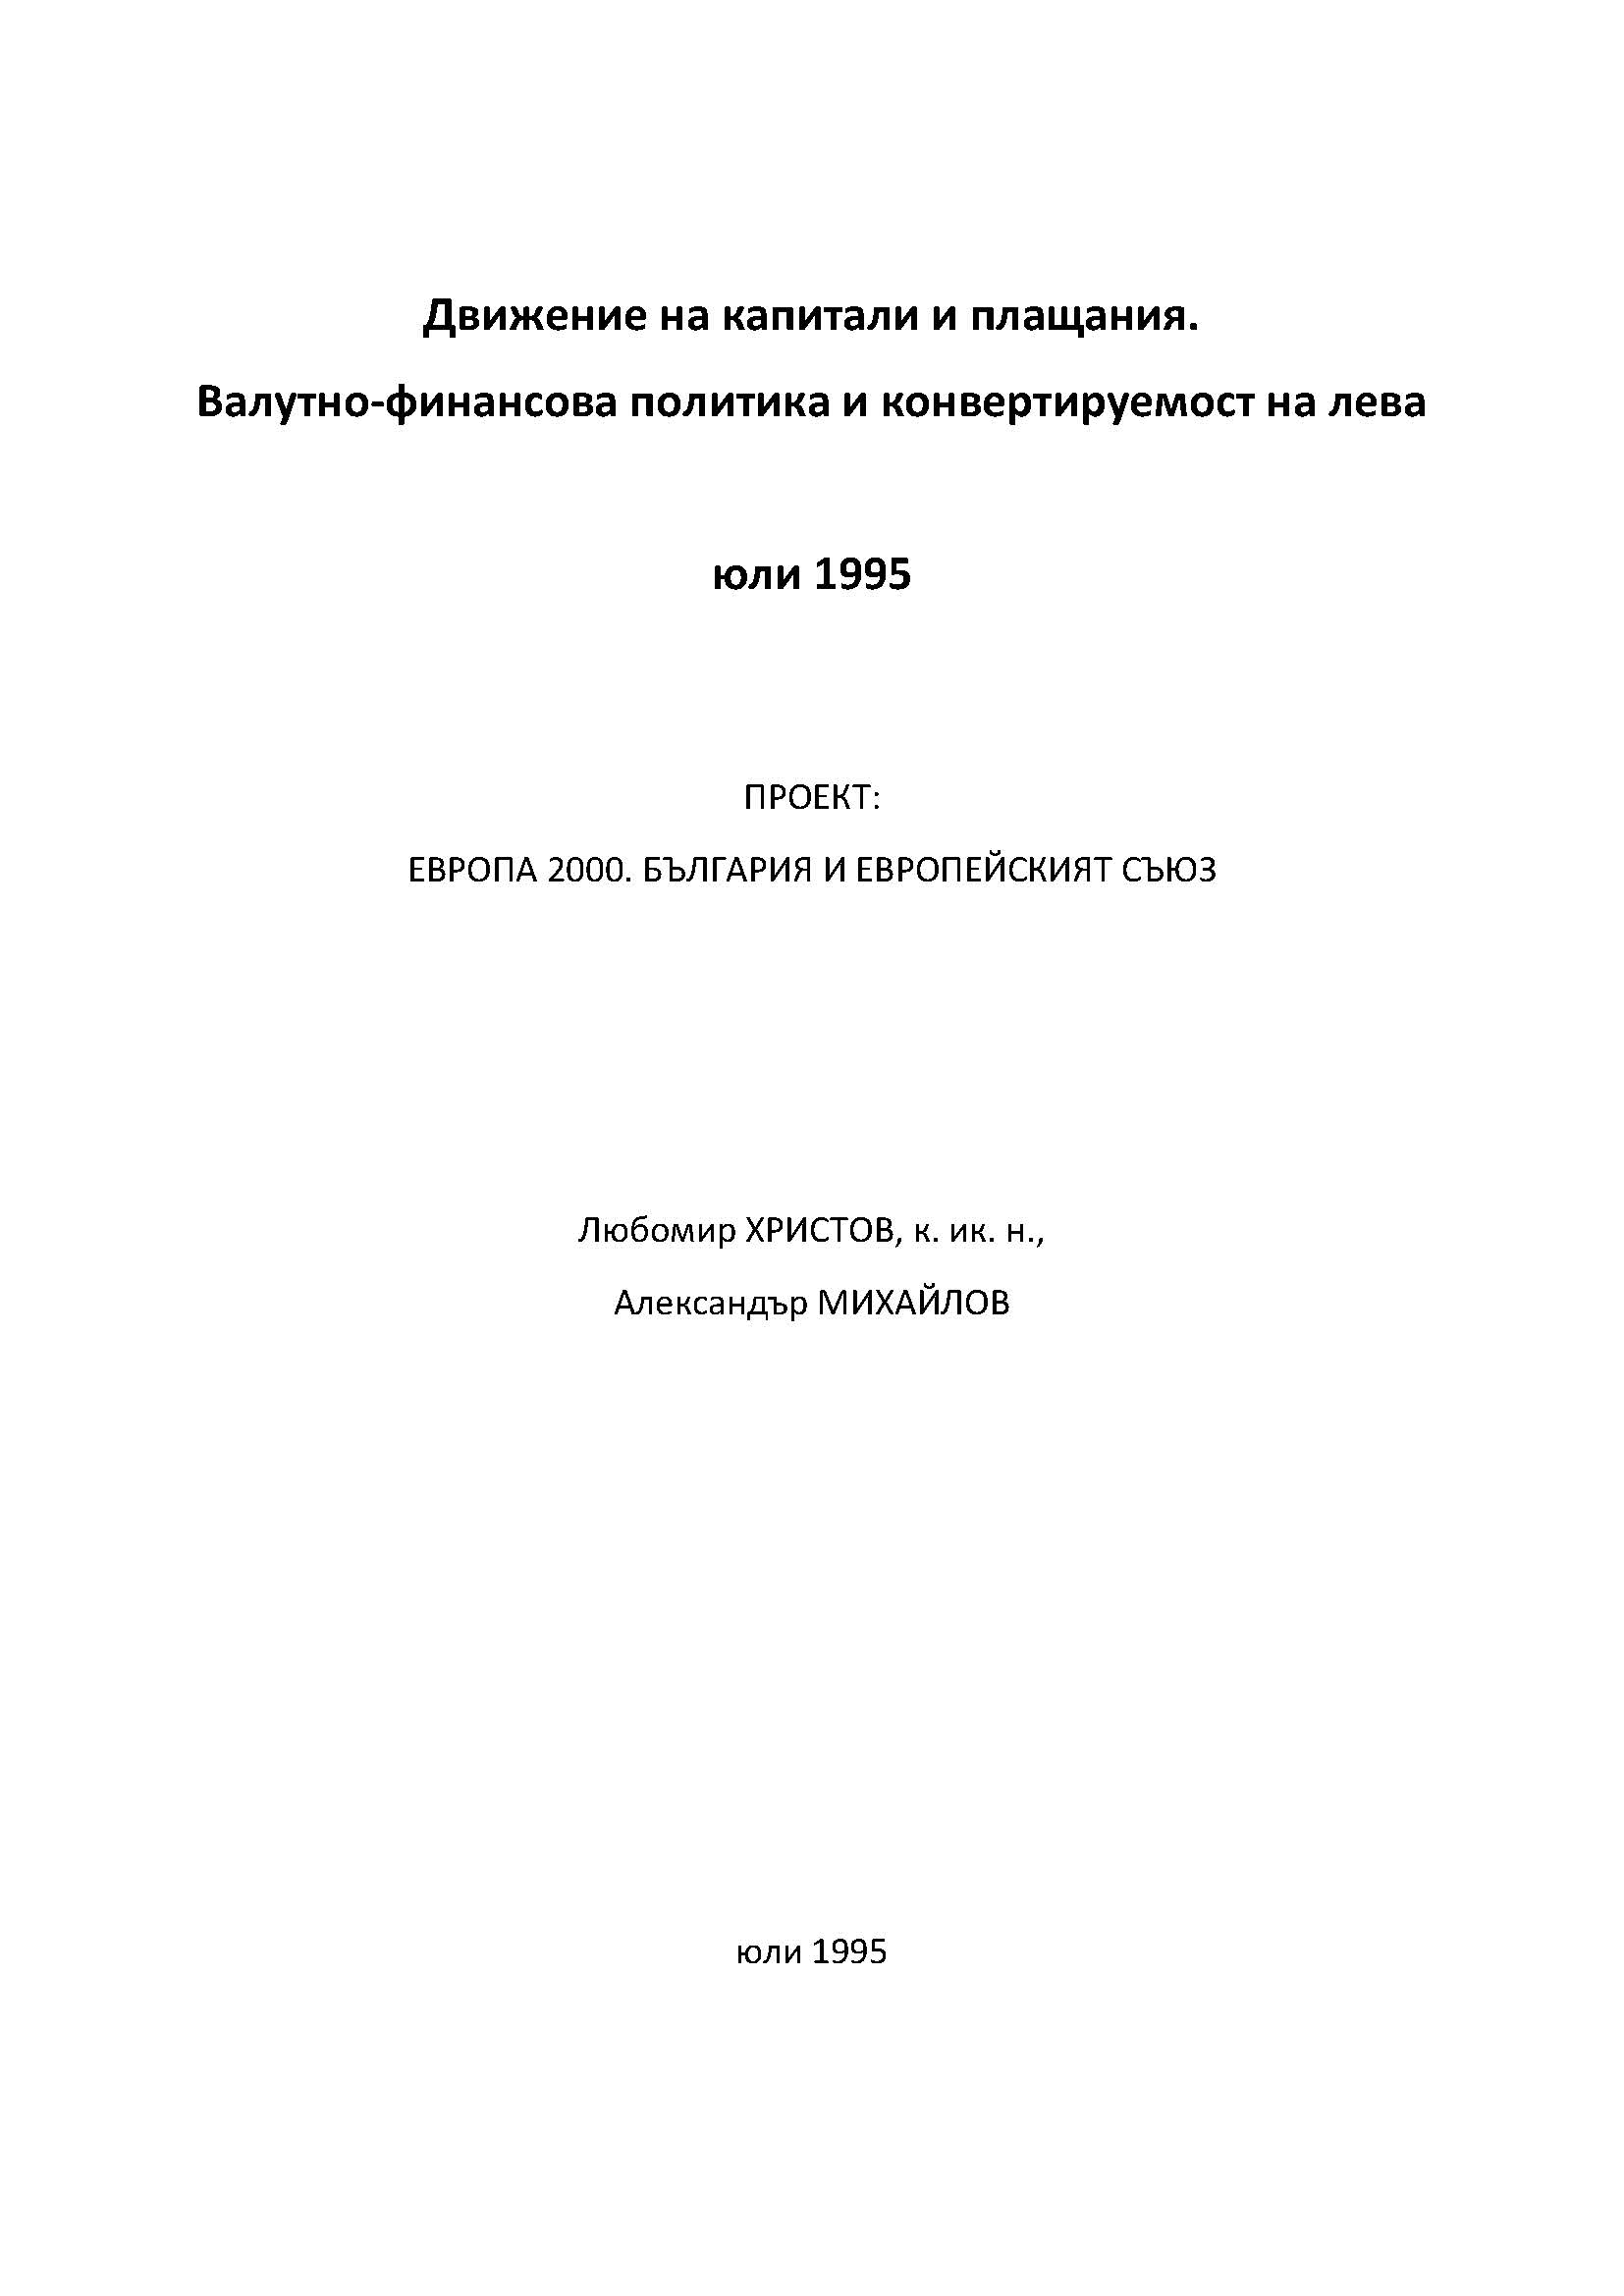 Movement of Capital and Payments. Monetary and Financial Policies and Convertibility of the Bulgarian Lev, 1995 Cover Image